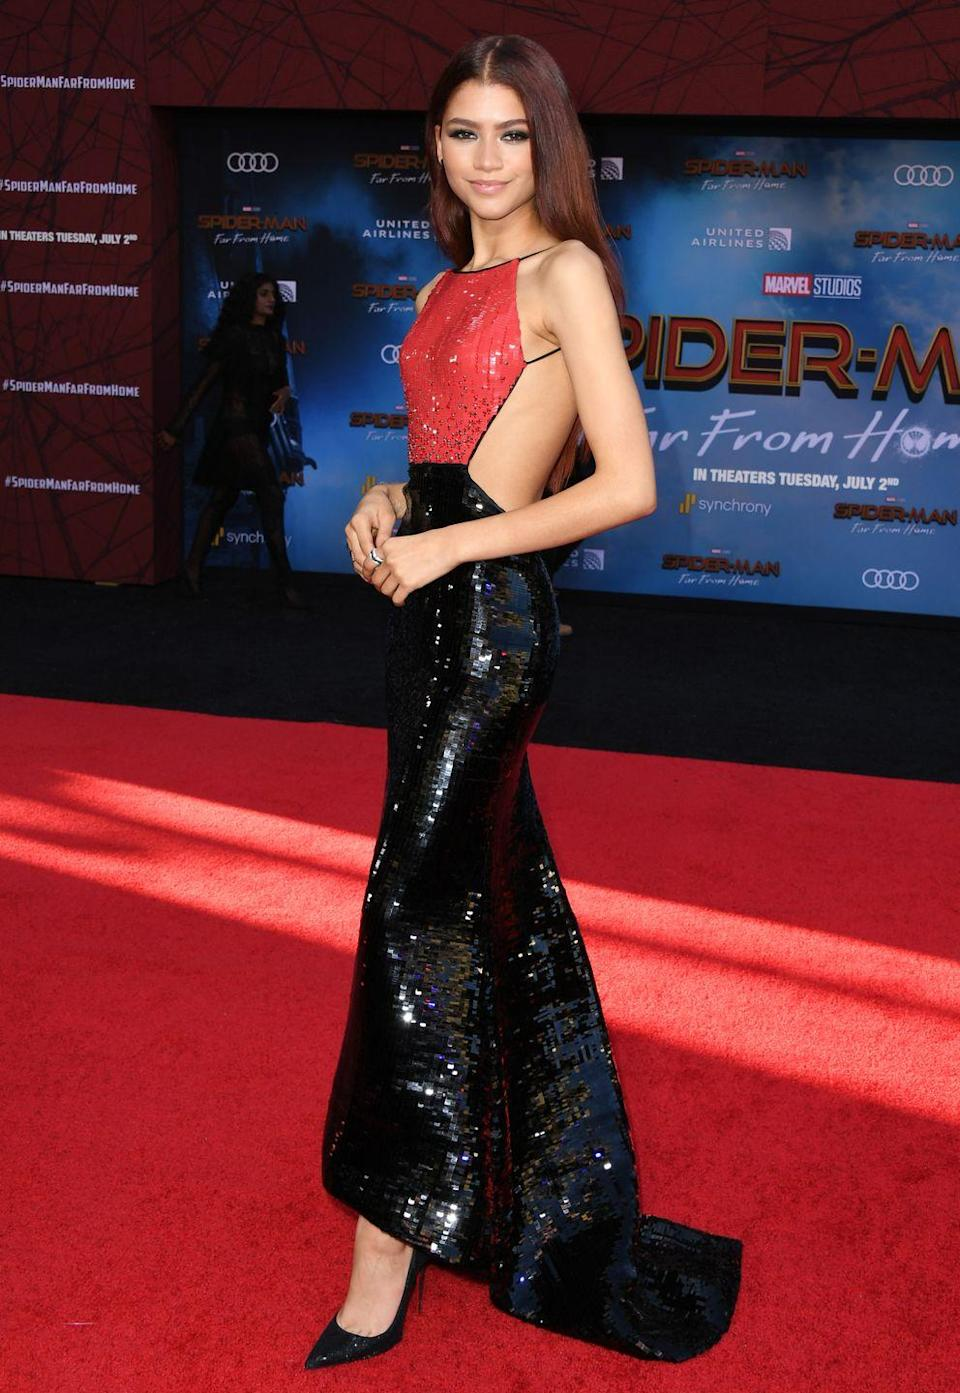 <p>Zendaya stunned in an Armani gown and Louboutin pumps for the <em>Spider-Man: Far From Home </em>premiere. </p>